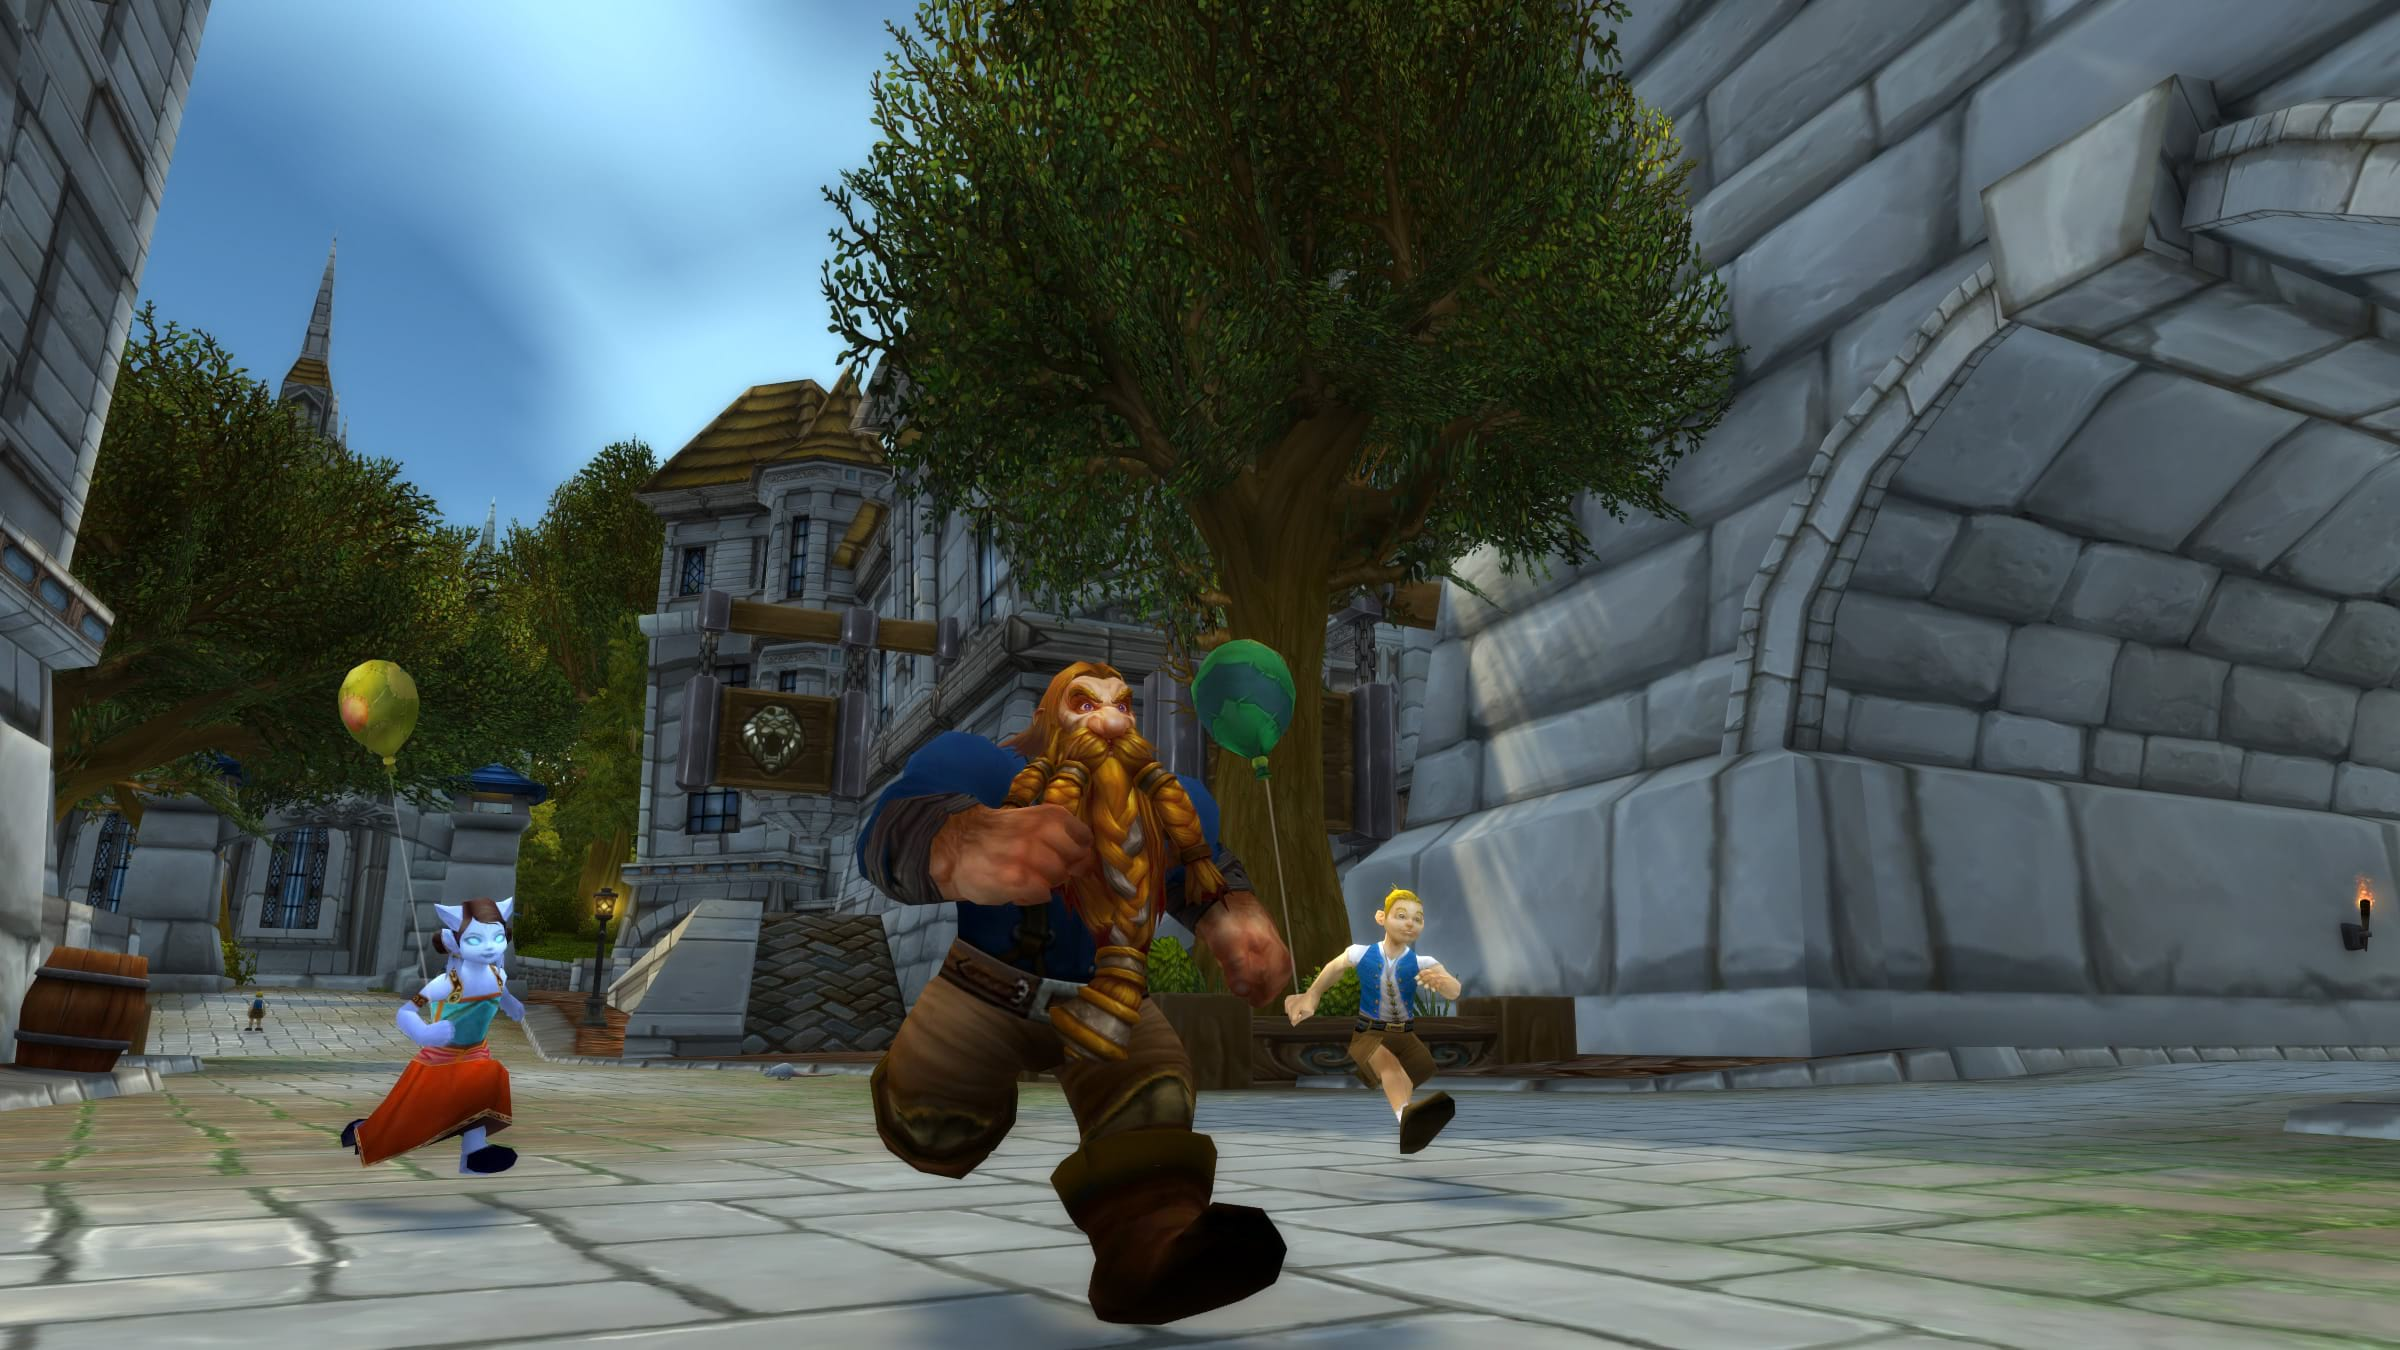 Weltereignis in World of Warcraft: Kinderwoche